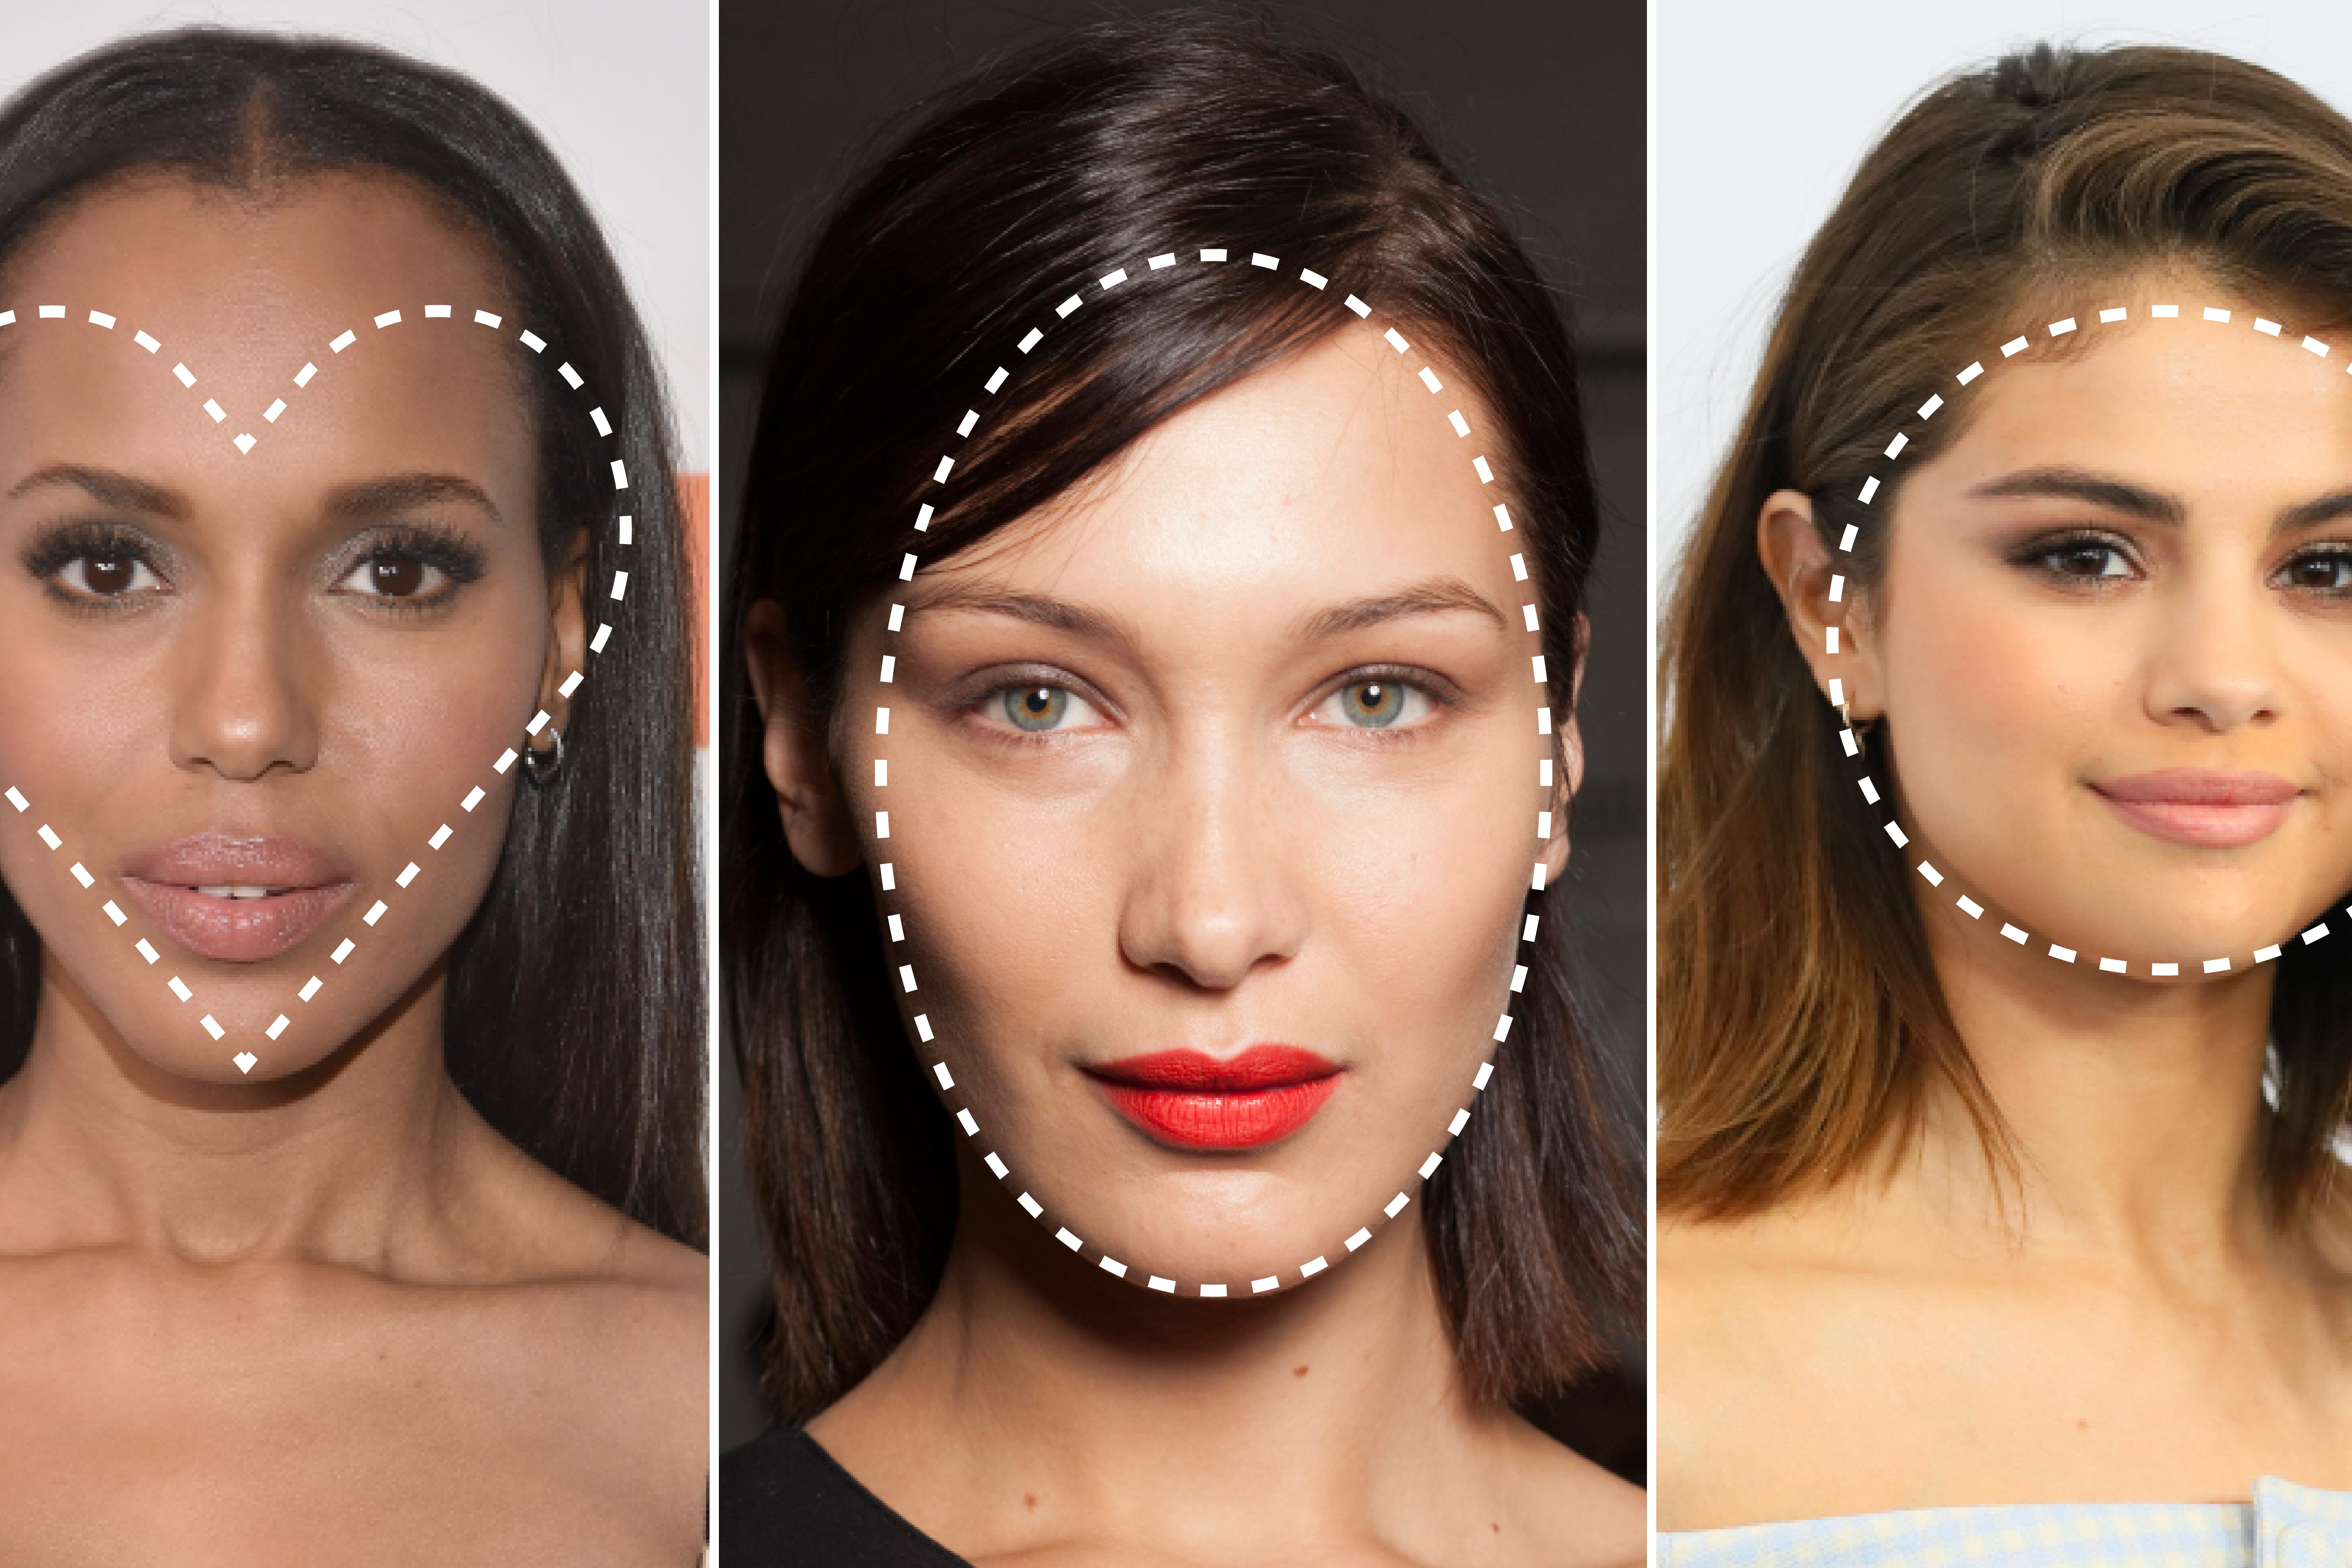 What Is My Face Shape? 3 Steps To Finding Your Face Shape – Allure Regarding Short Hairstyles For Round Faces And Glasses (View 22 of 25)